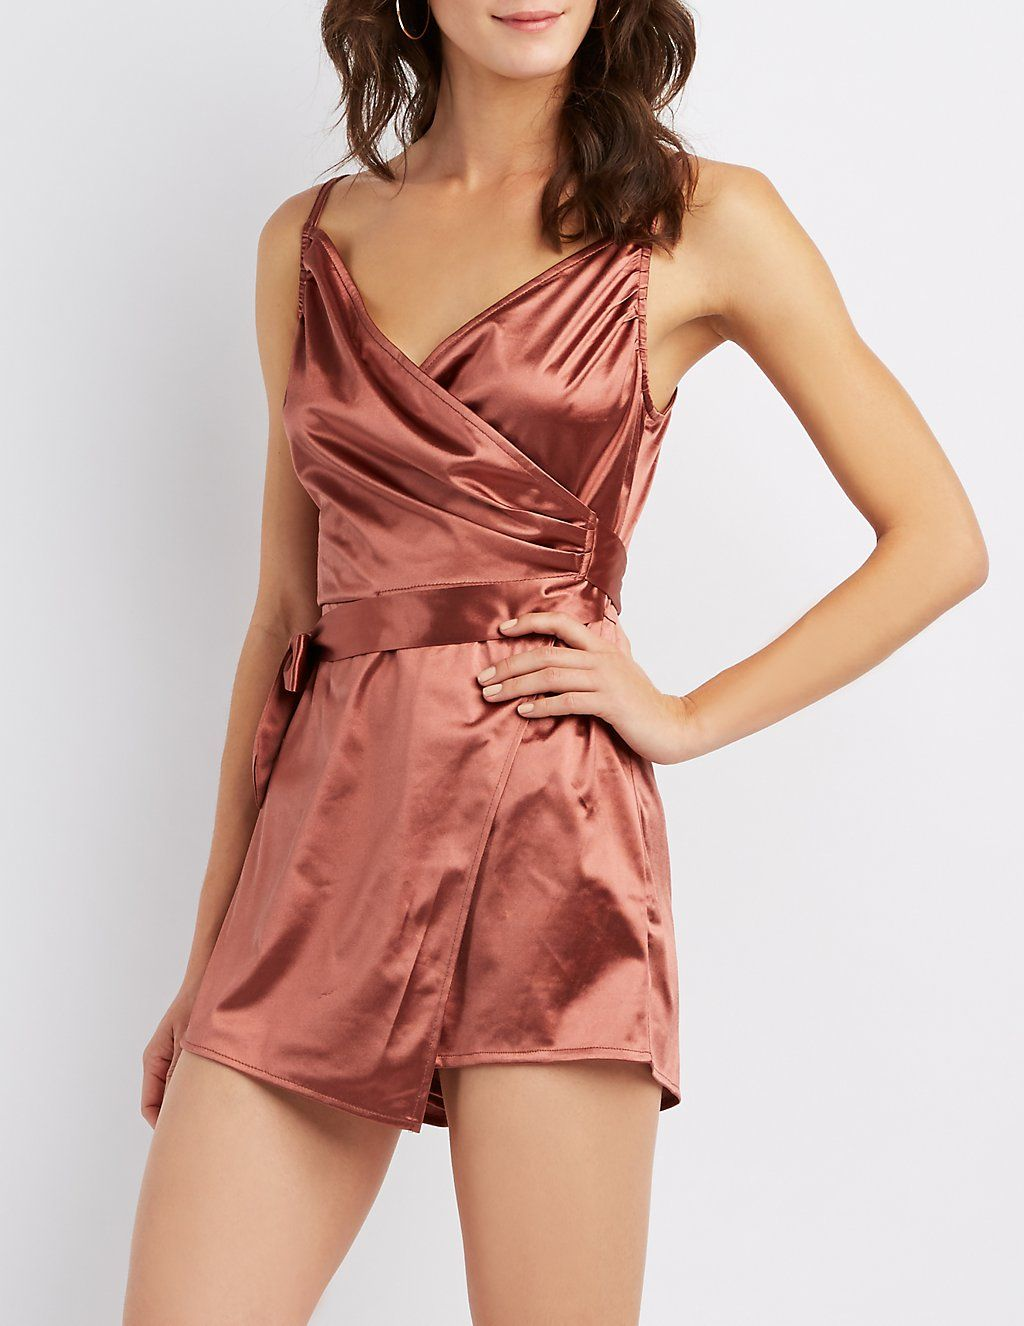 23d1dade27d Make a daring statement in this alluring satin romper